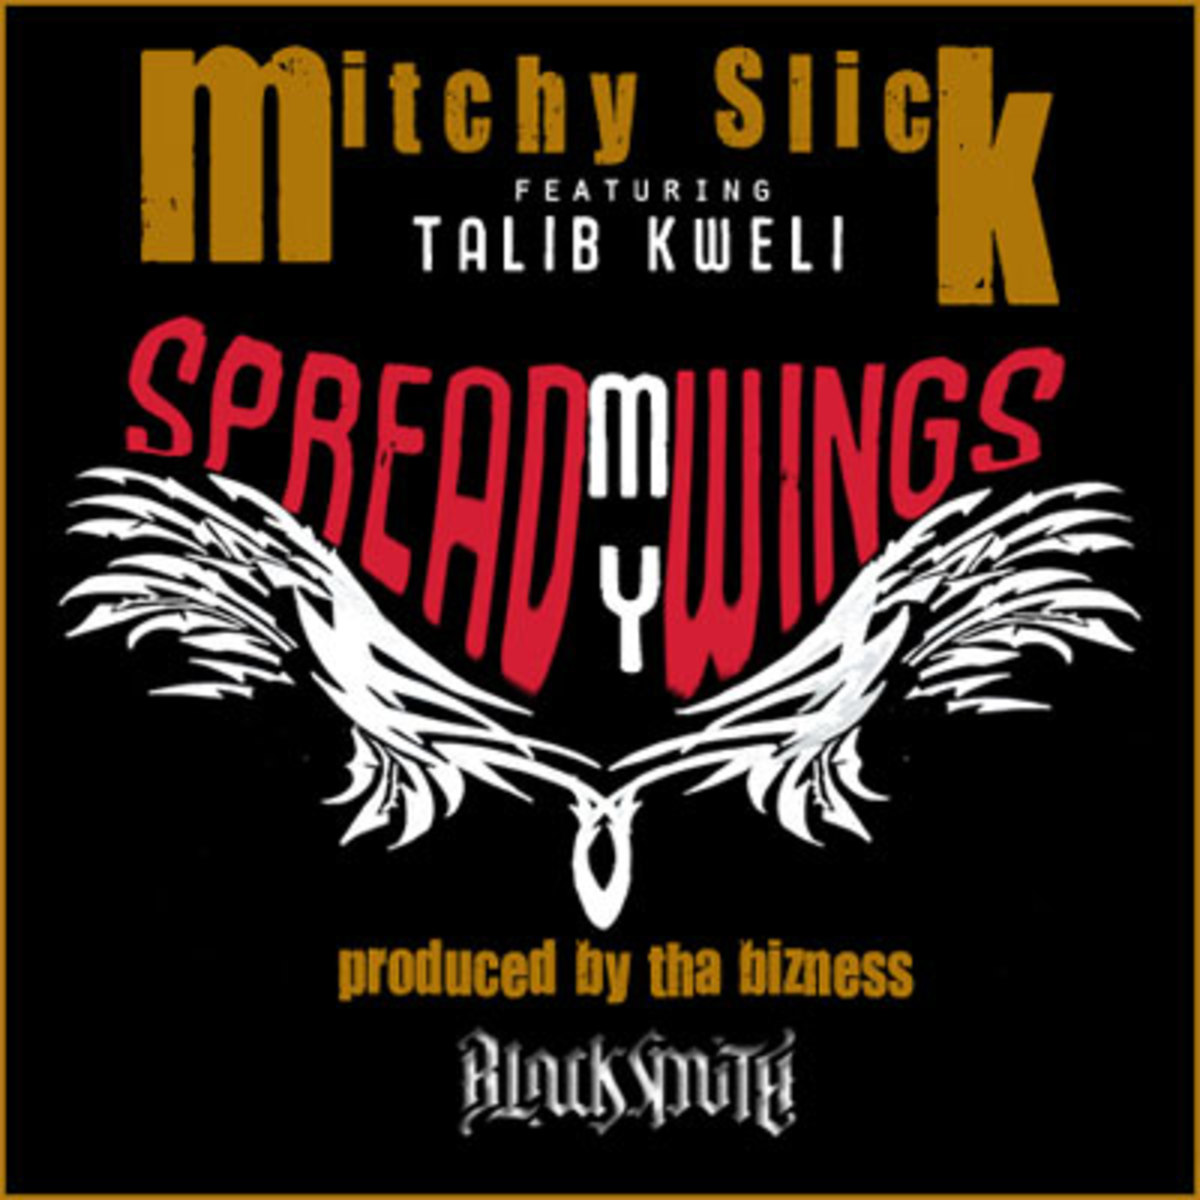 mitchyslick-spreadmywings.jpg